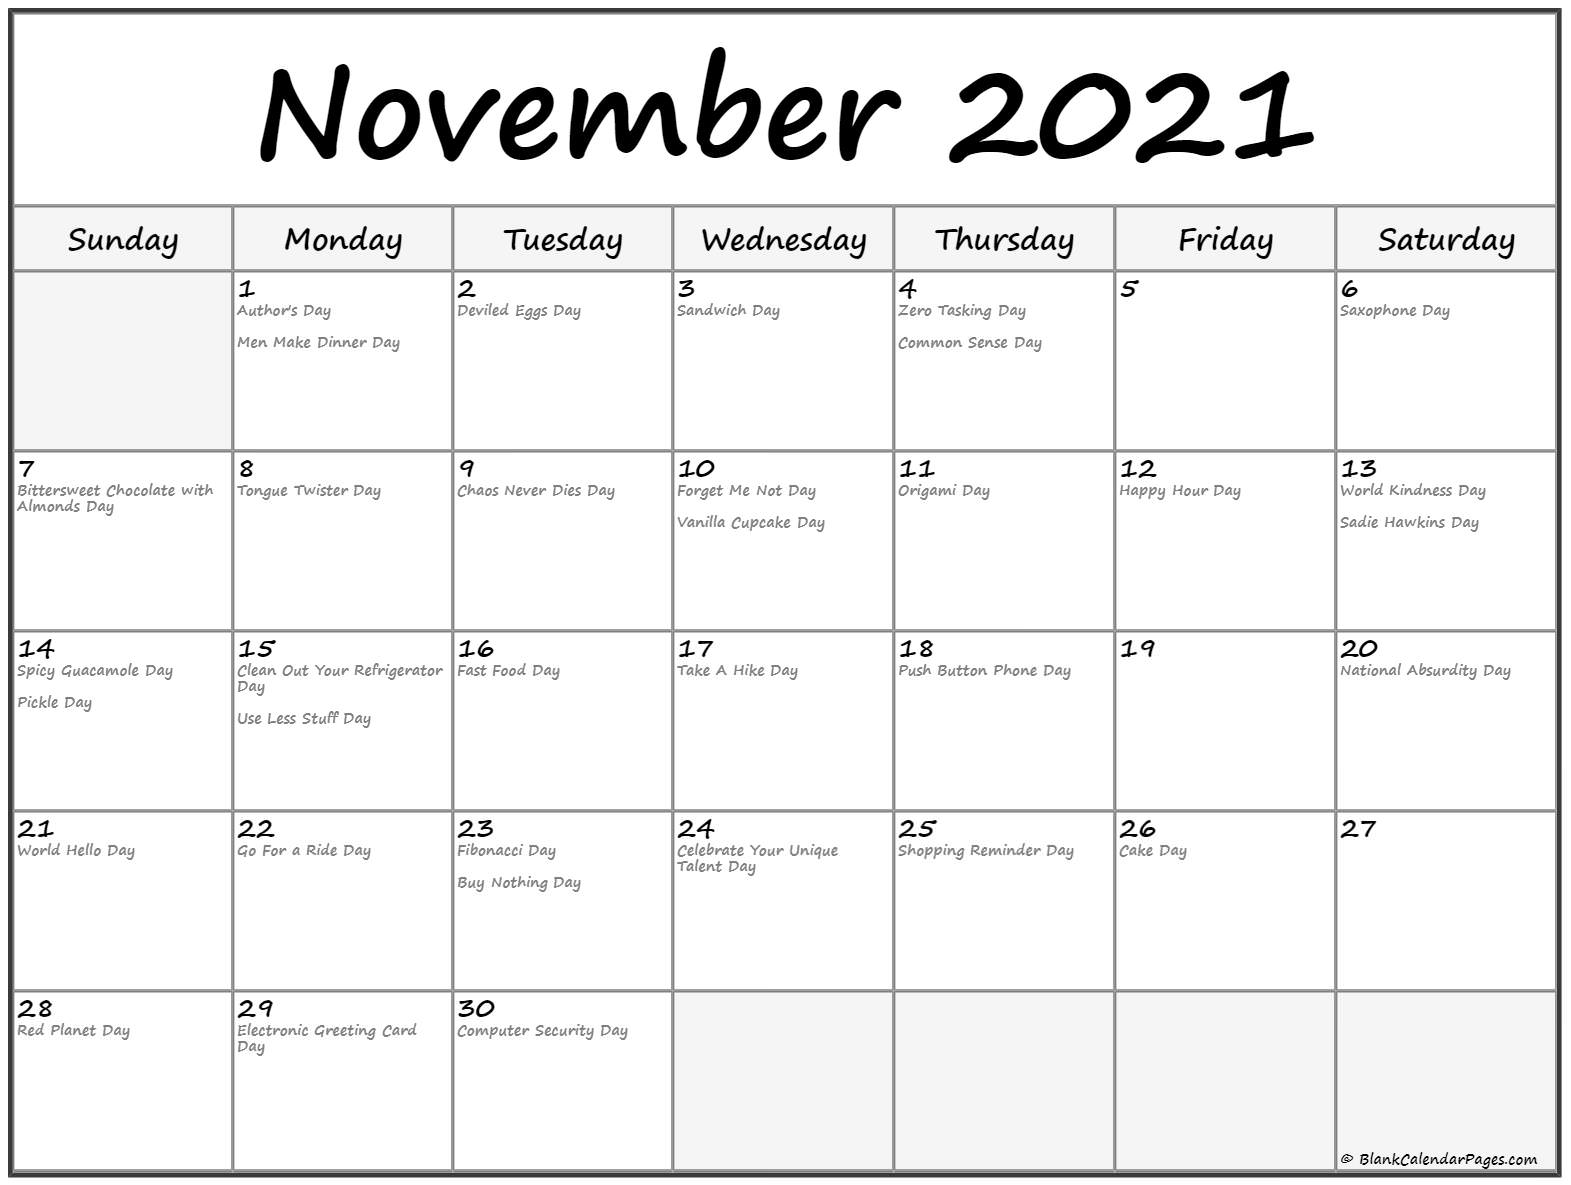 November 2021 funny holidays calendar